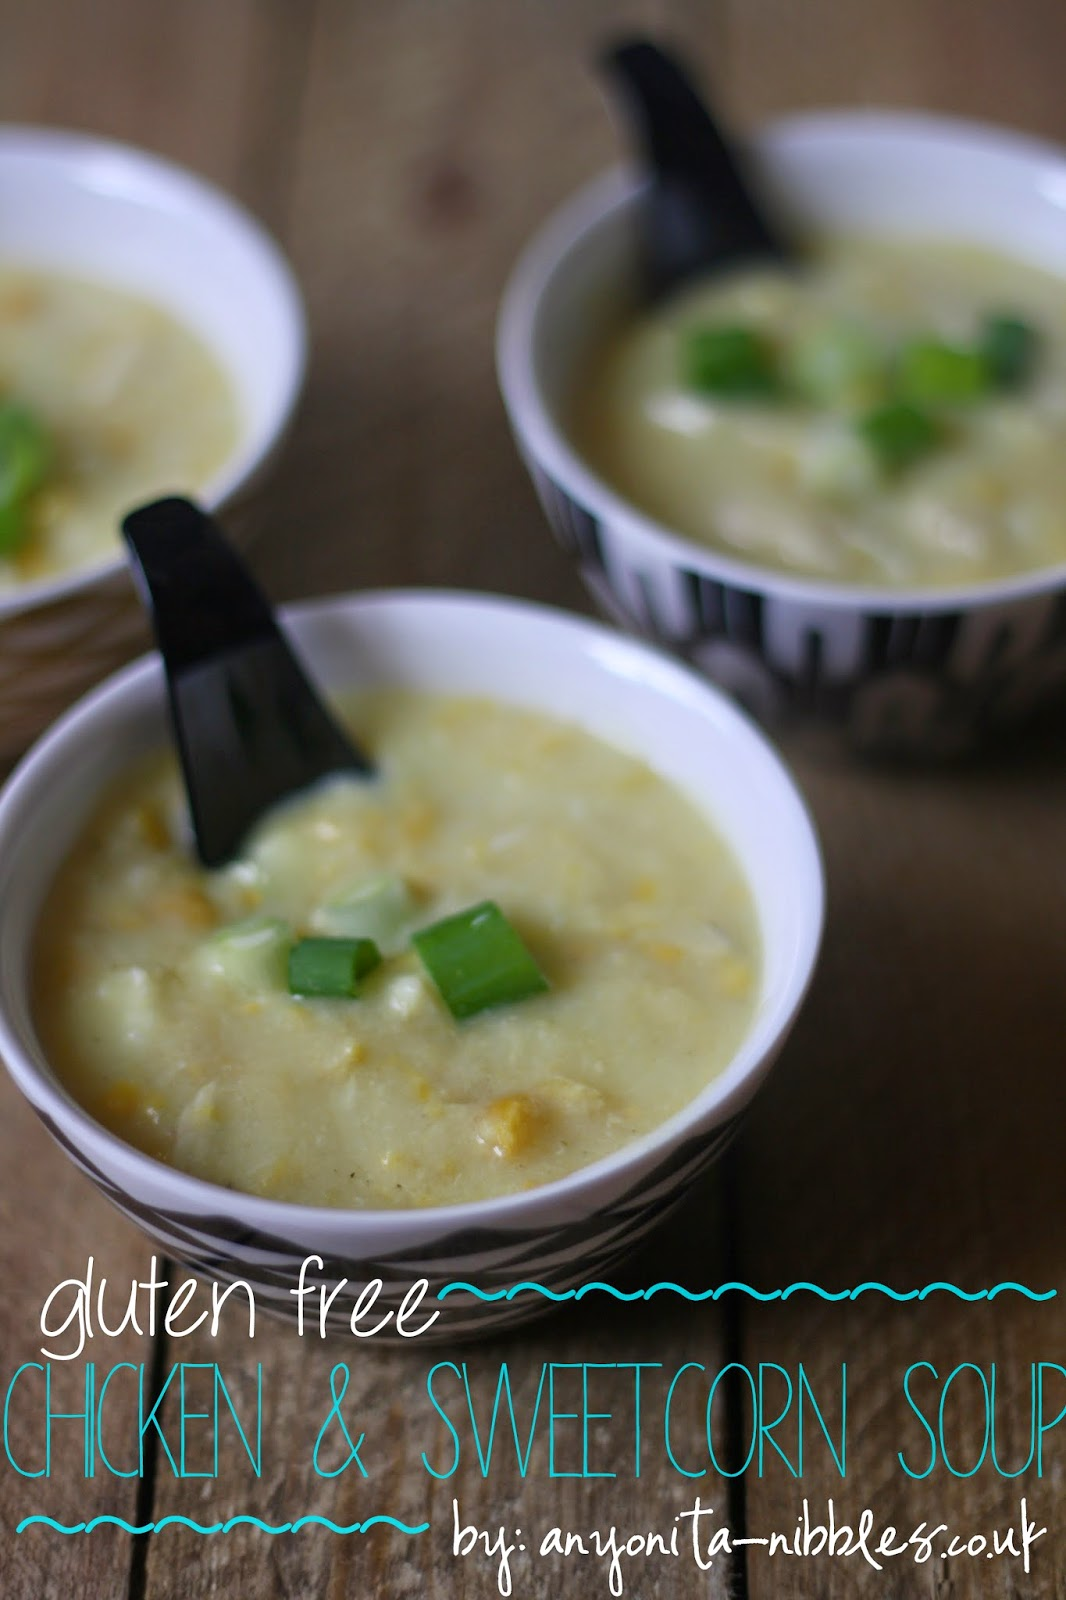 http://www.anyonita-nibbles.co.uk/2015/02/gluten-free-chicken-sweetcorn-soup.html